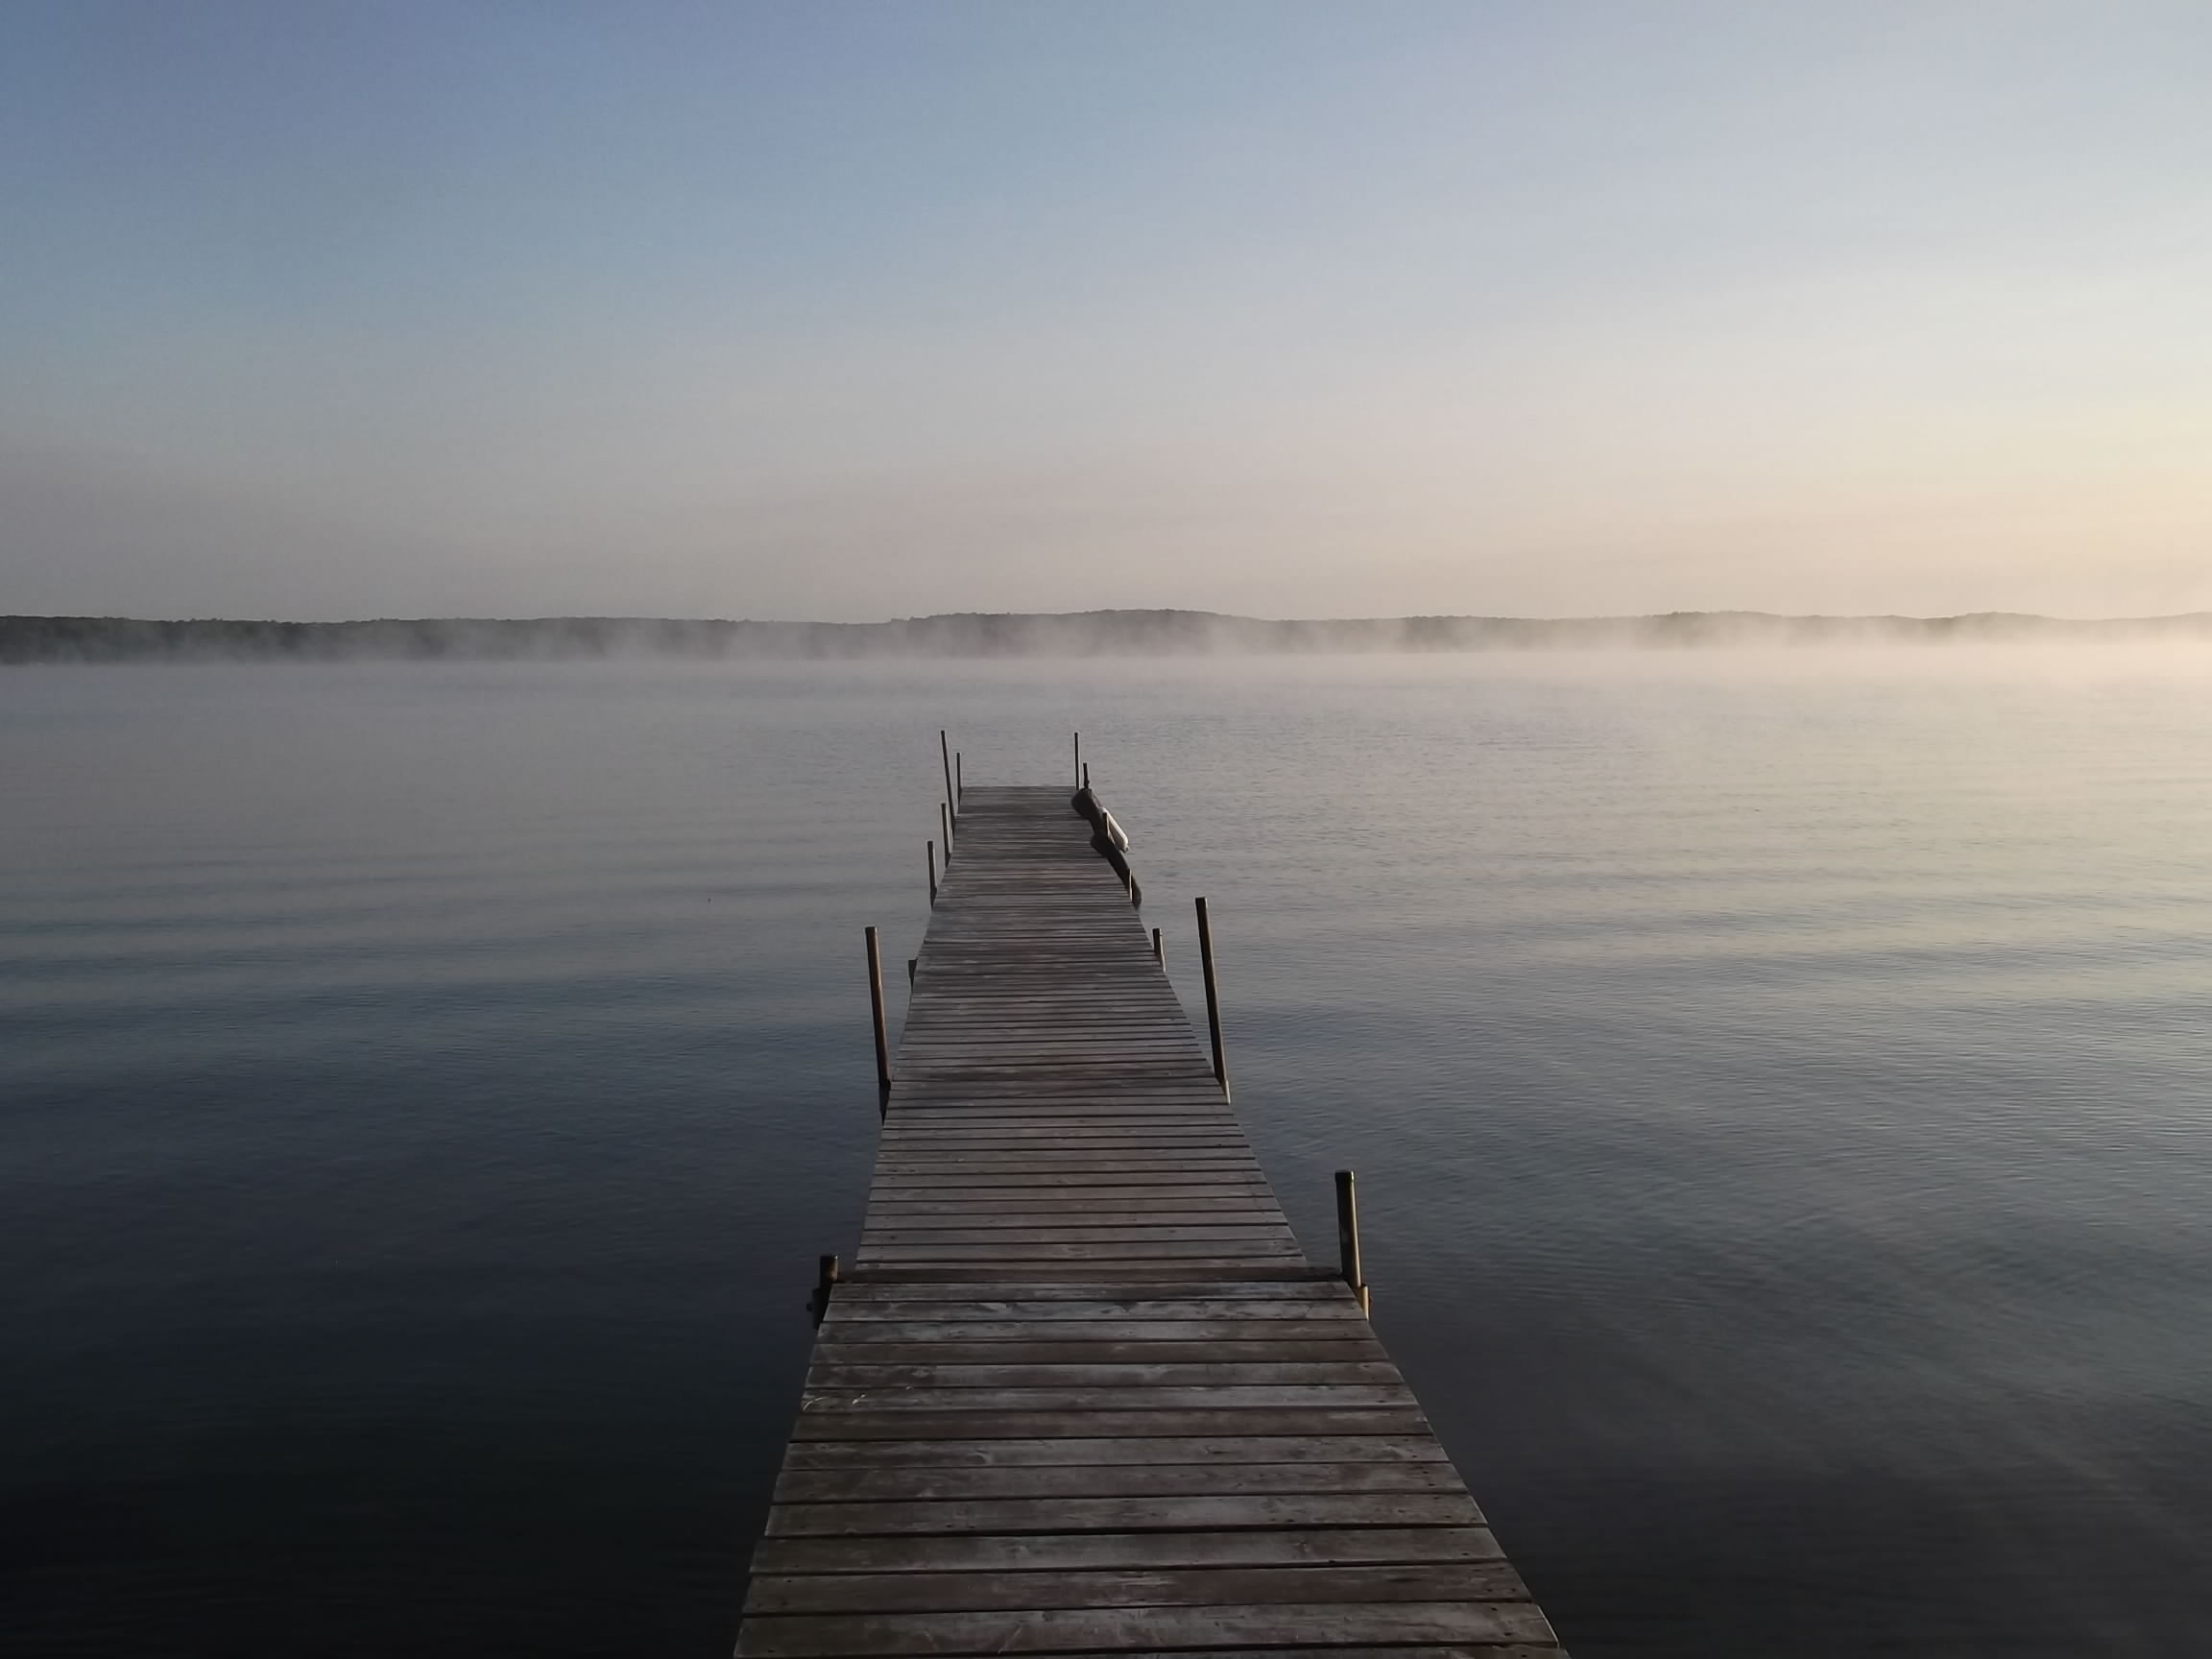 boardwalk over body of water with fogs